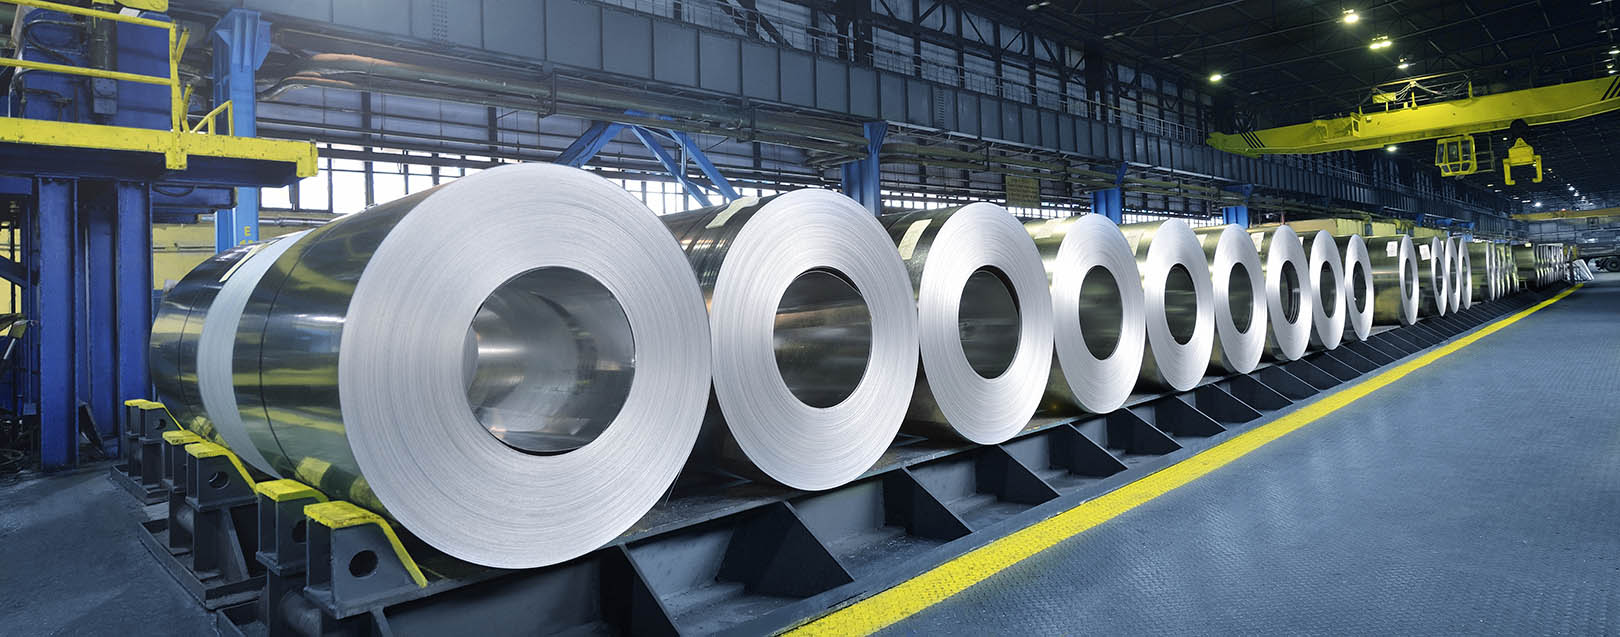 China objects to India's anti-dumping on steel